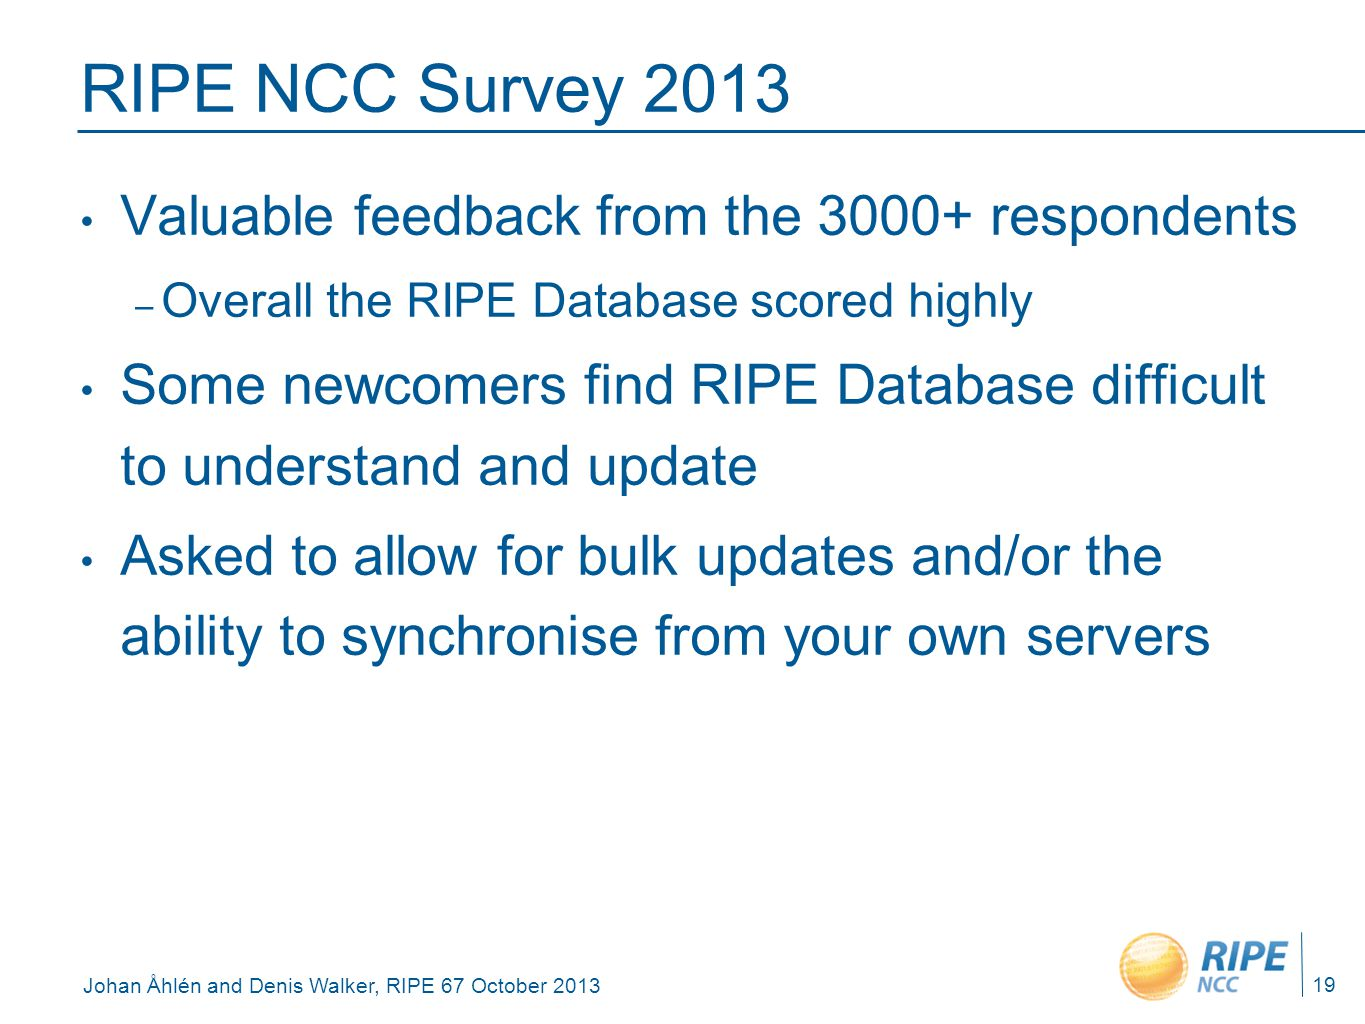 Johan Åhlén and Denis Walker, RIPE 67 October 2013 RIPE NCC Survey 2013 Valuable feedback from the 3000+ respondents – Overall the RIPE Database score